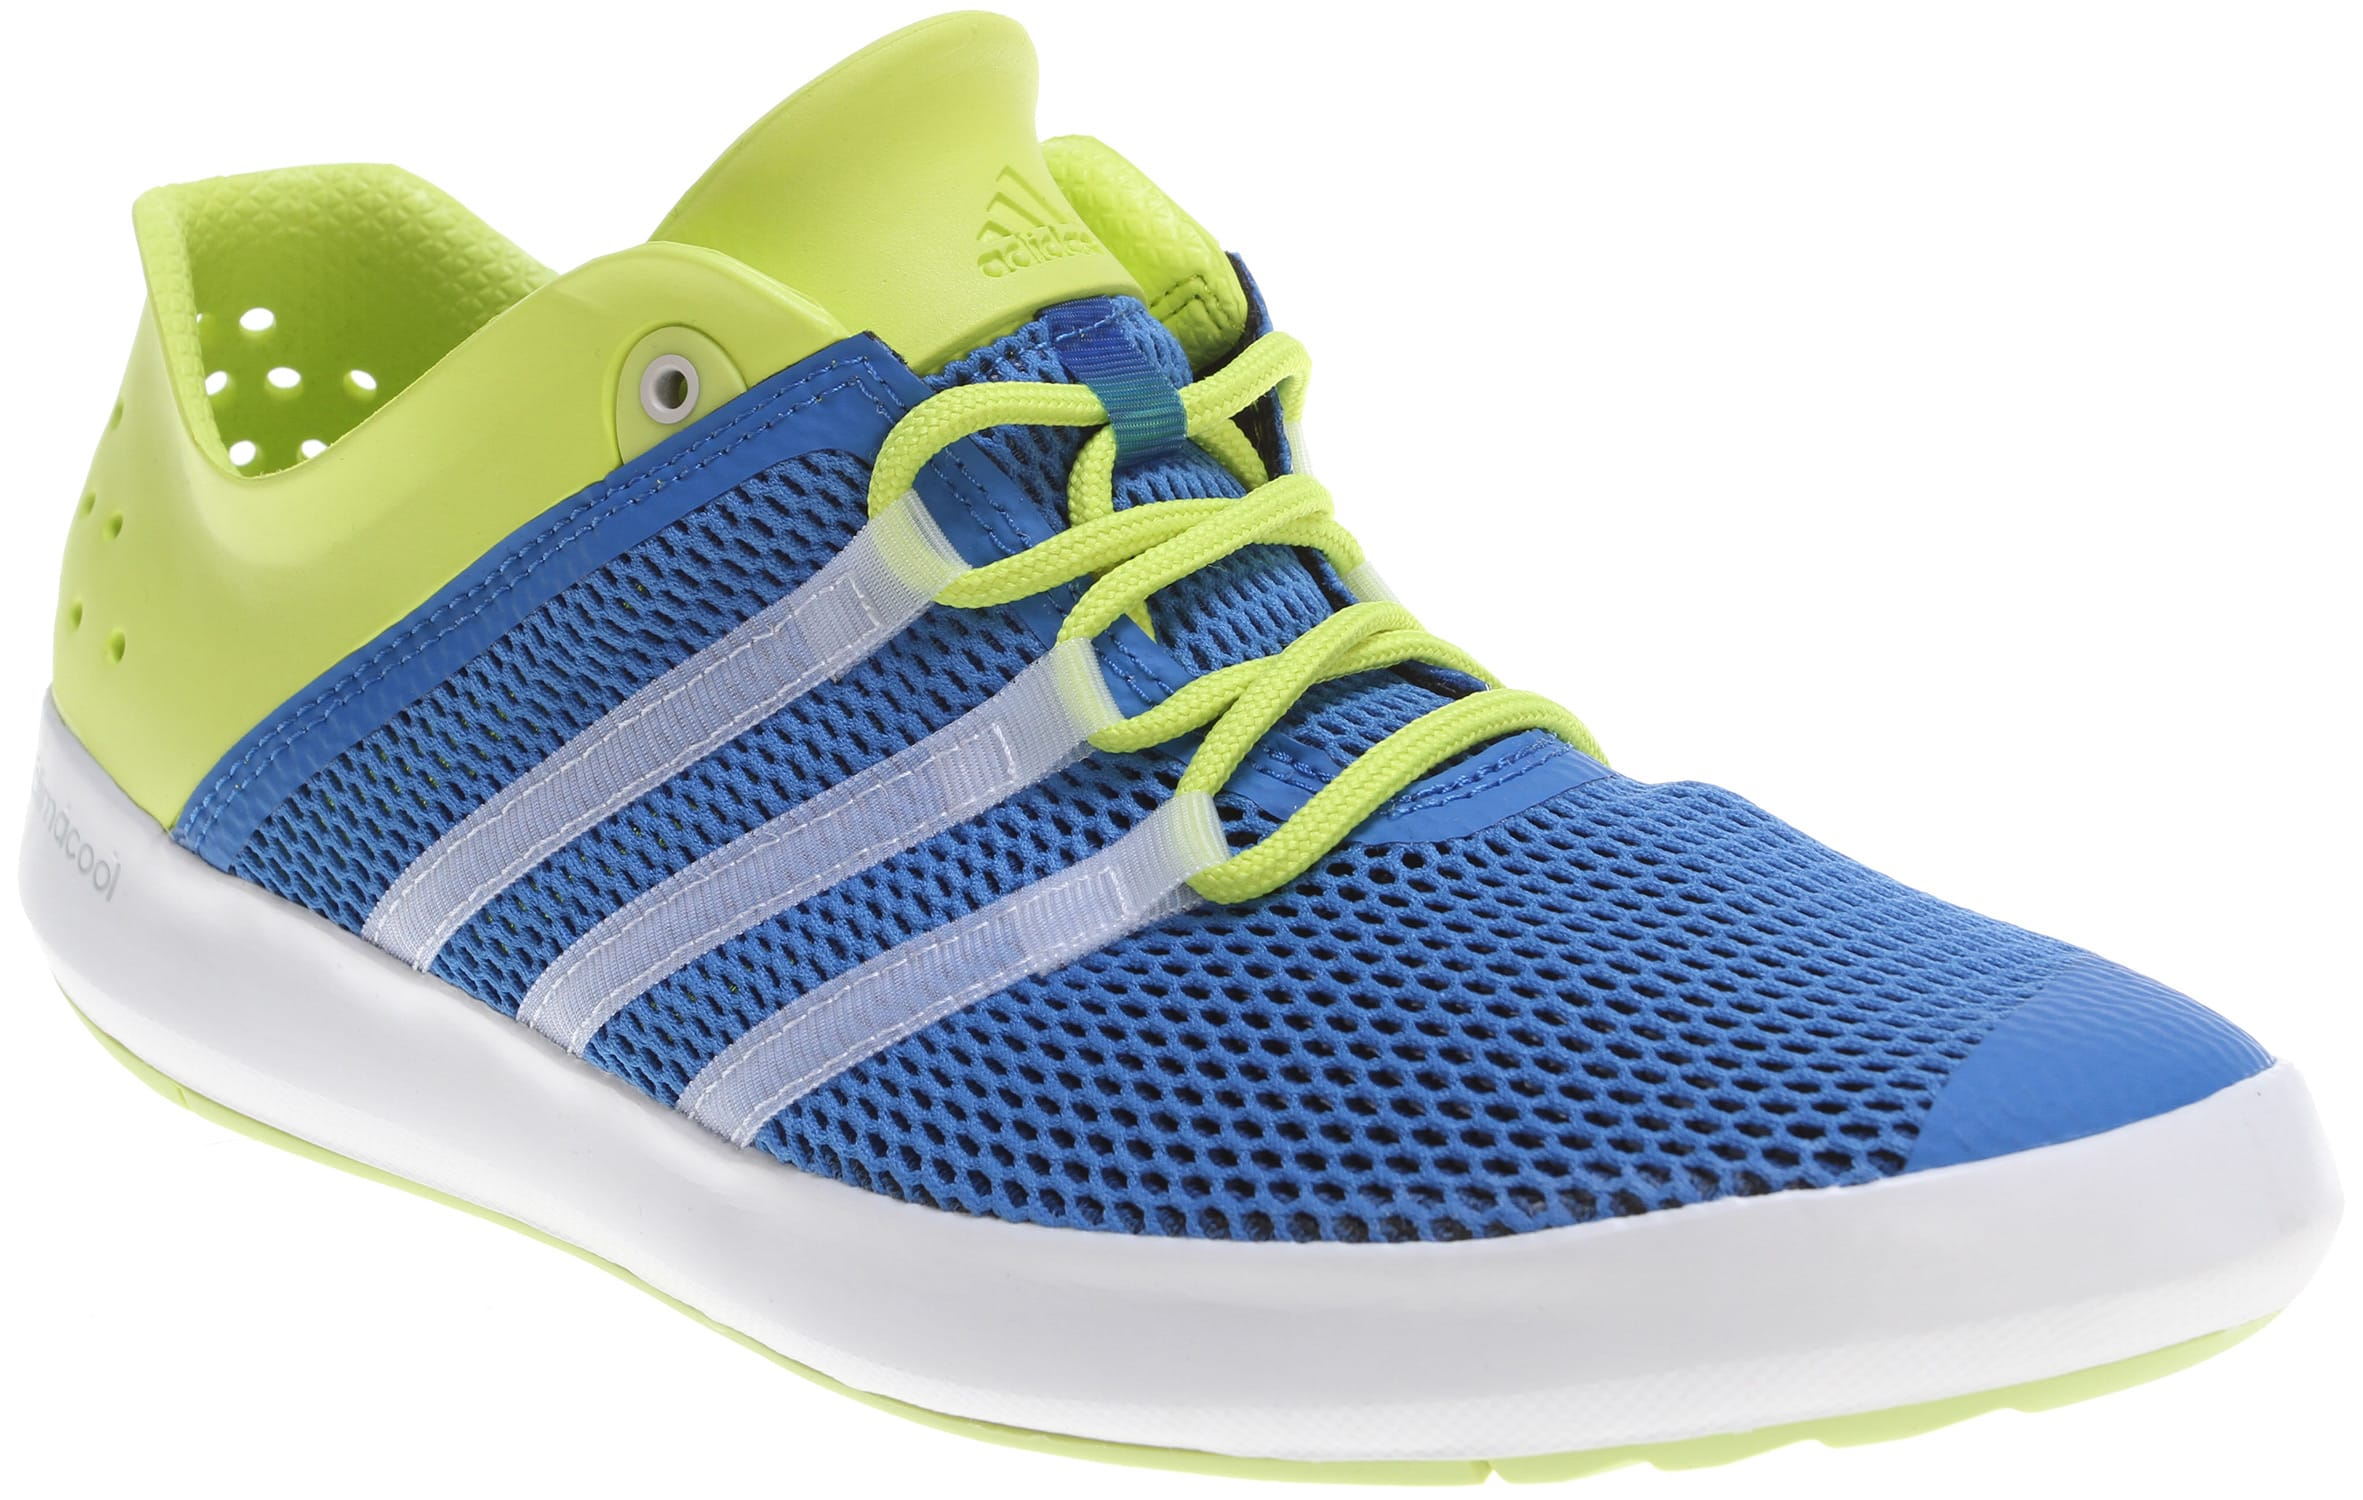 adidas men's climacool boat pure water shoes